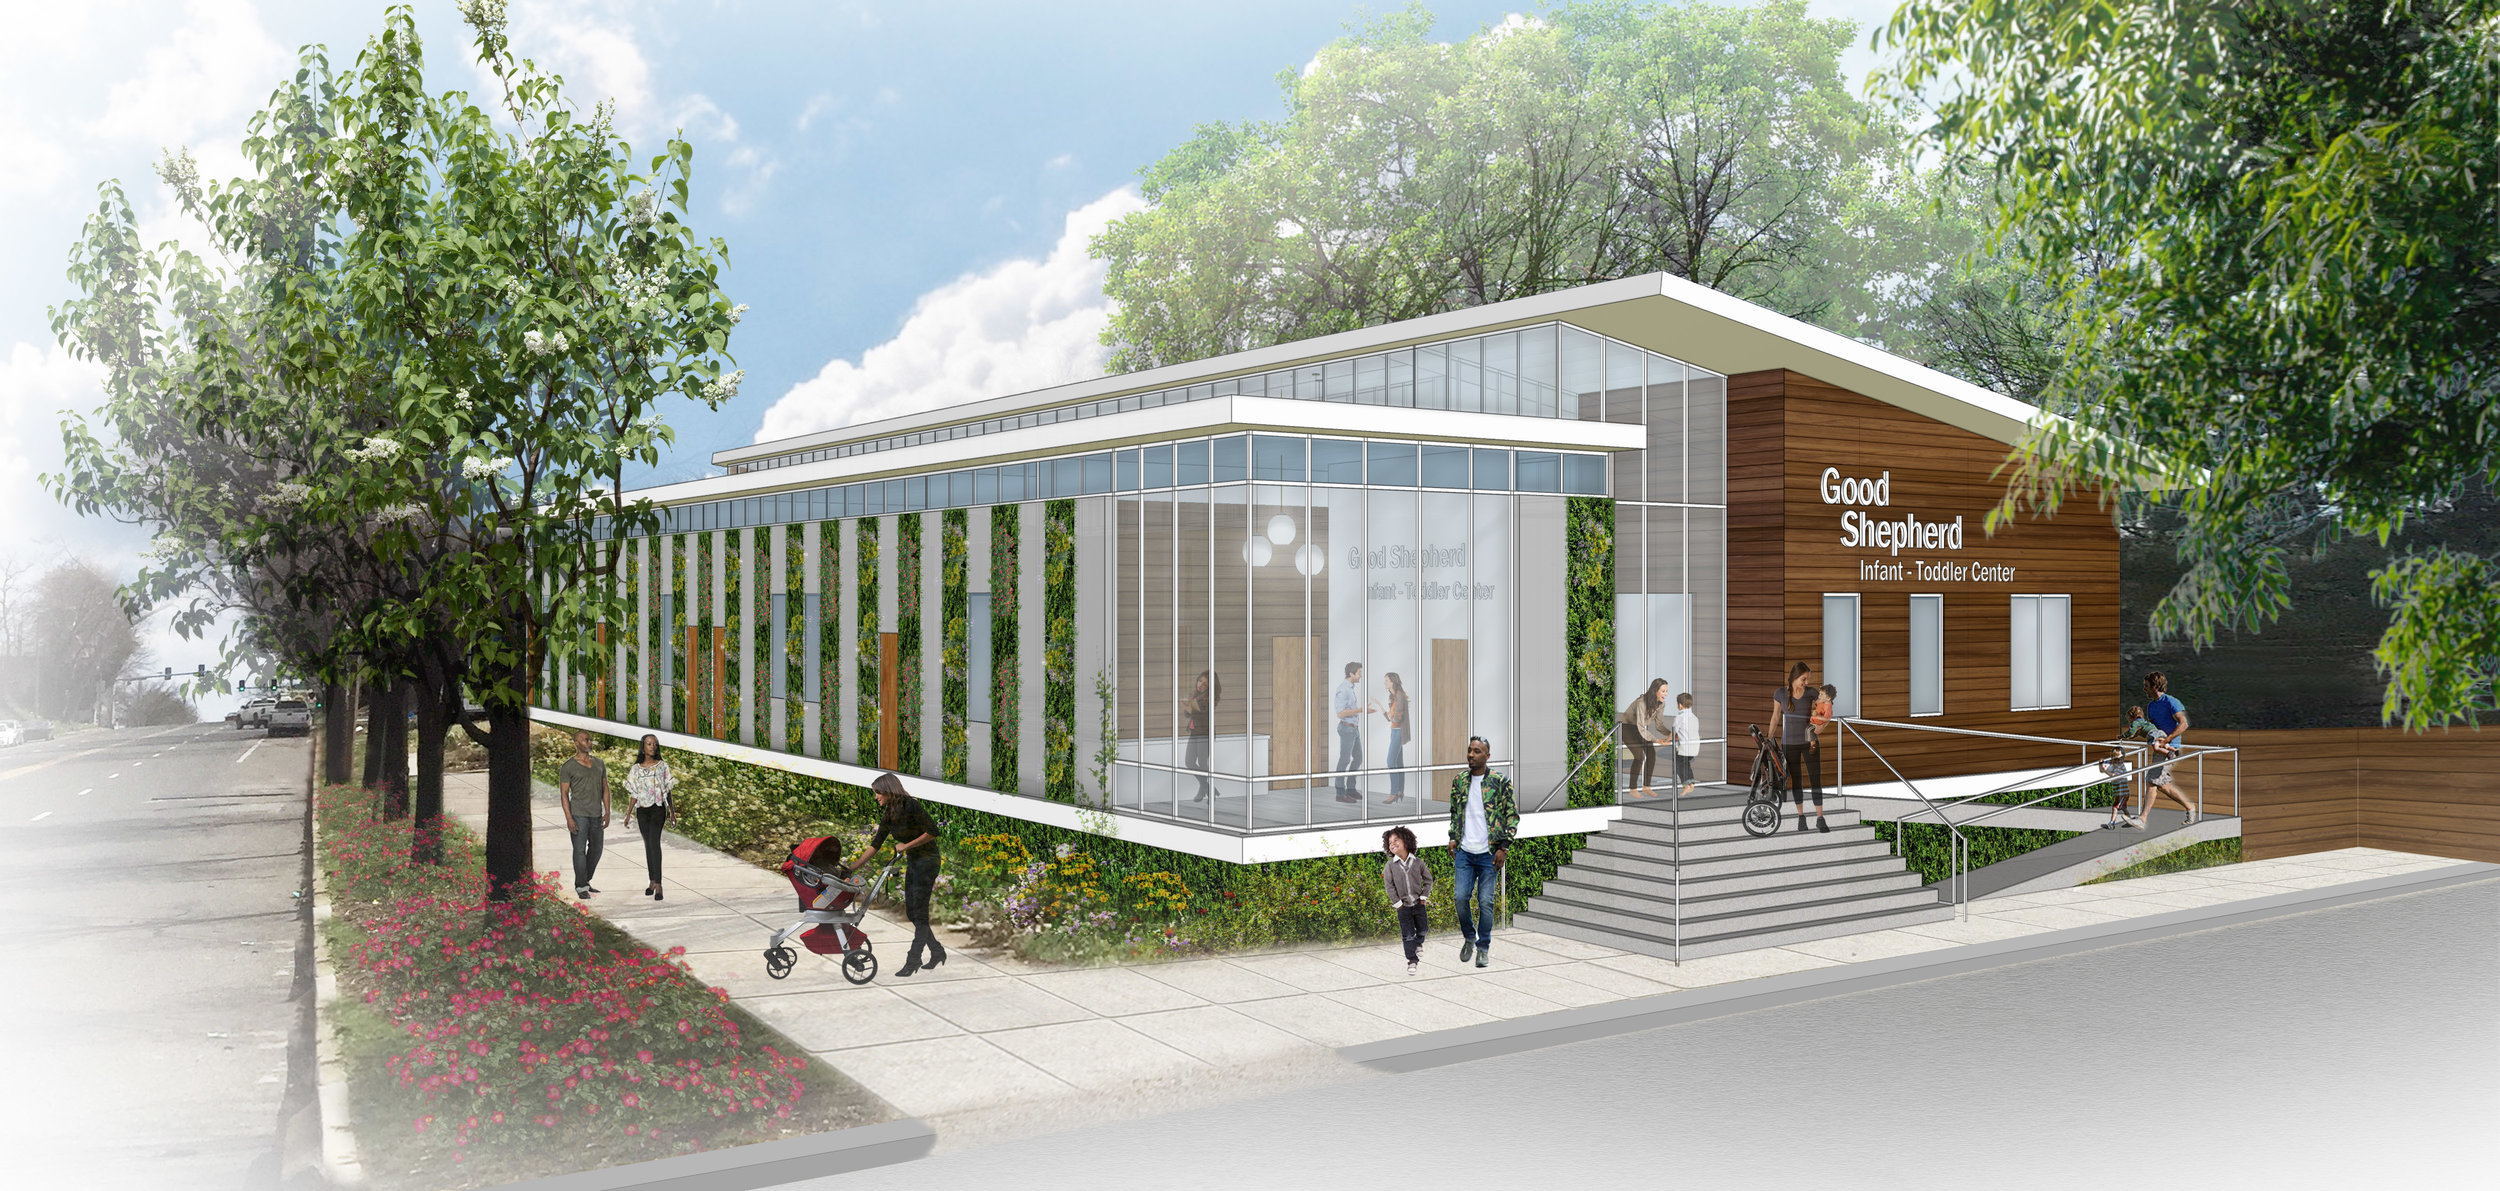 The garden grows around and on the building, enveloping it -